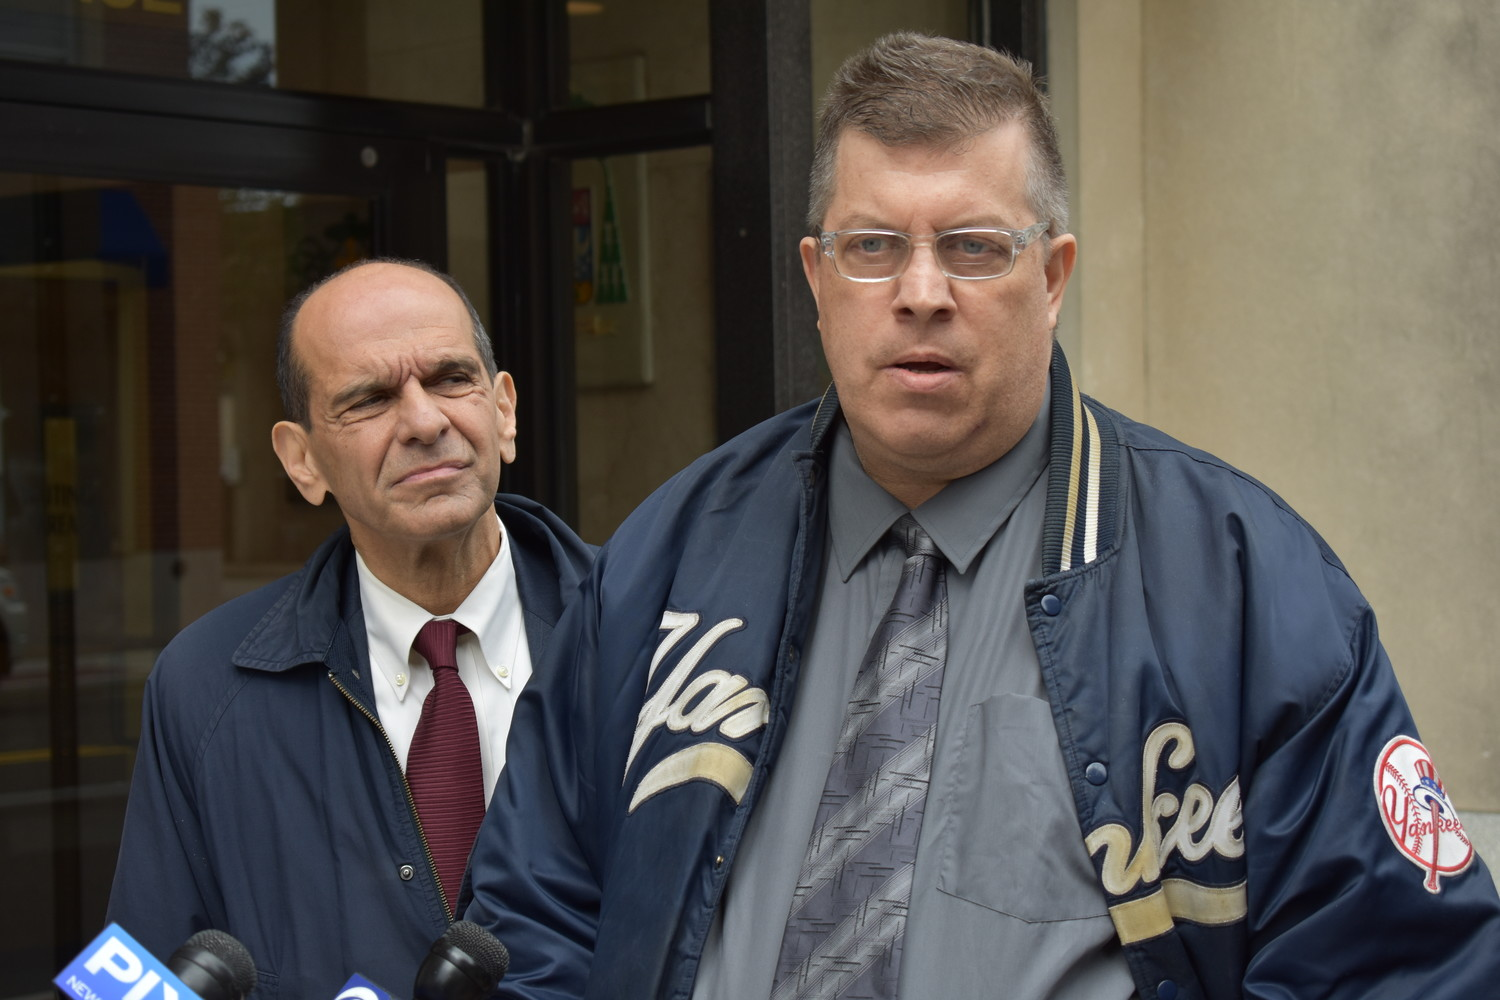 Thomas McGarvey, right, who grew up in Franklin Square, alleged that a priest sexually abused him at St. Catherine of Sienna Church over eight years at a news conference outside the Diocese of Rockville Centre's headquarters on Monday. Boston attorney Mitchell Garabedian, left, who has handled hundreds of sexual abuse cases, is representing him.